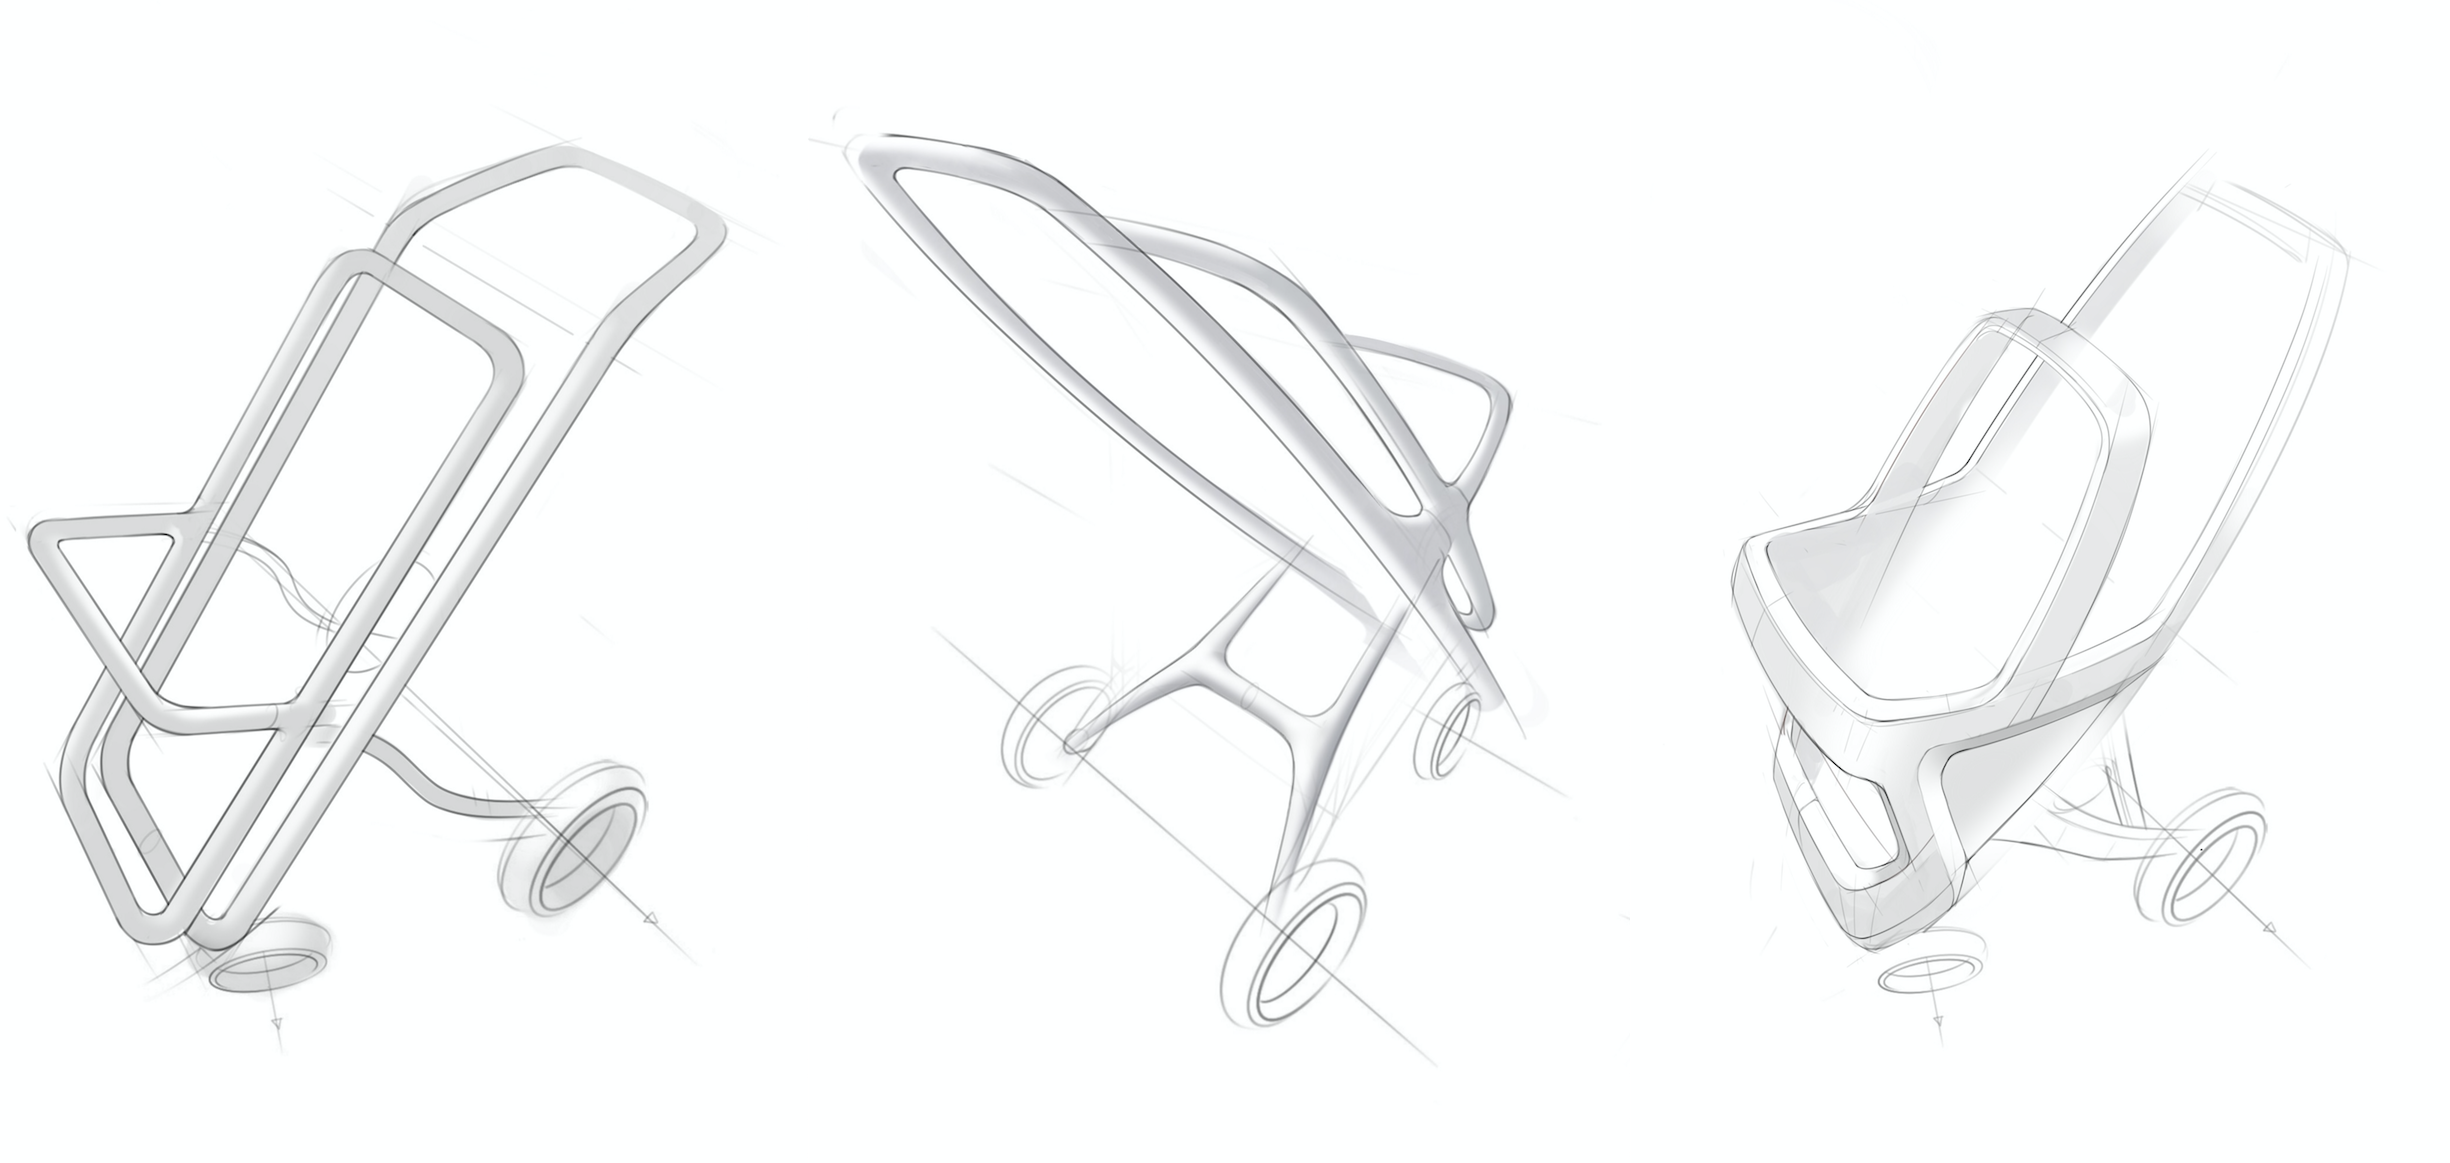 P2-16_Riva Stroller_Sketches.png